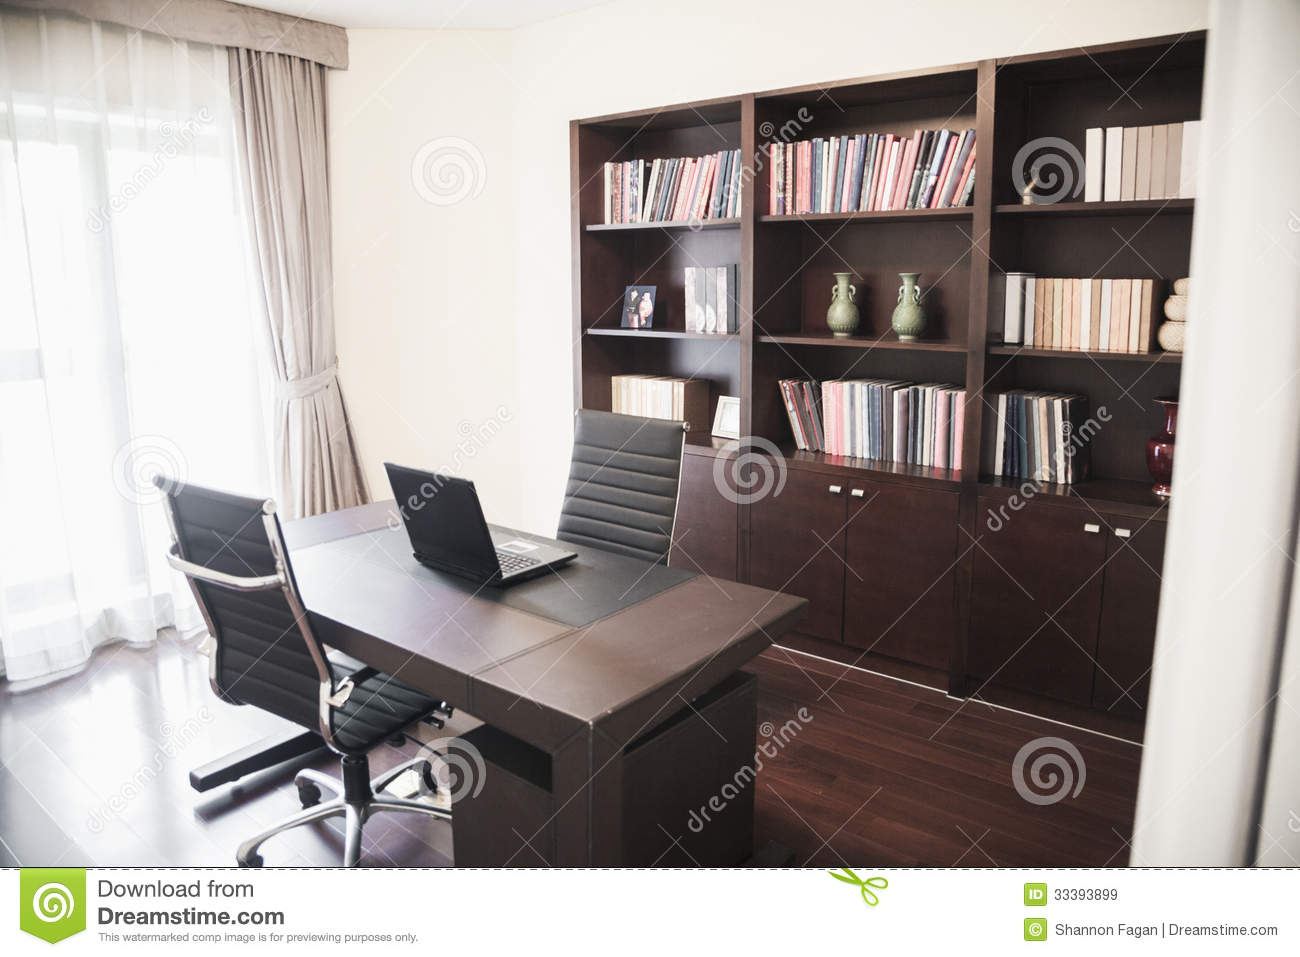 Modern Home Office With Bookshelves. oyalty Free Stock Images ... - ^